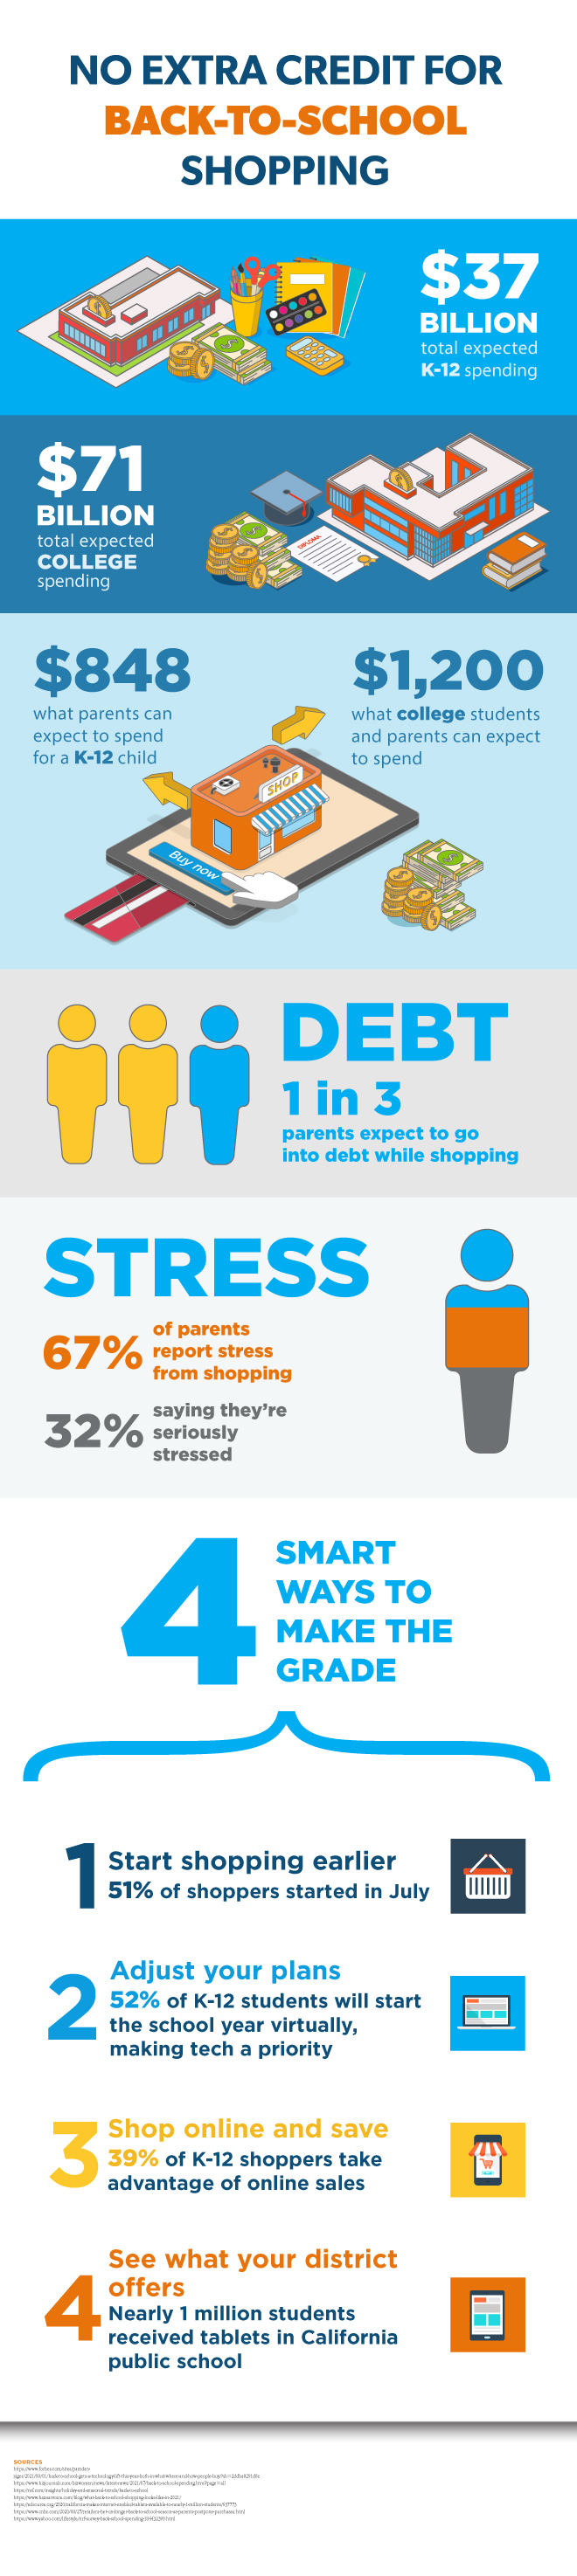 No Extra Credit for Back-to-School Shopping infographic